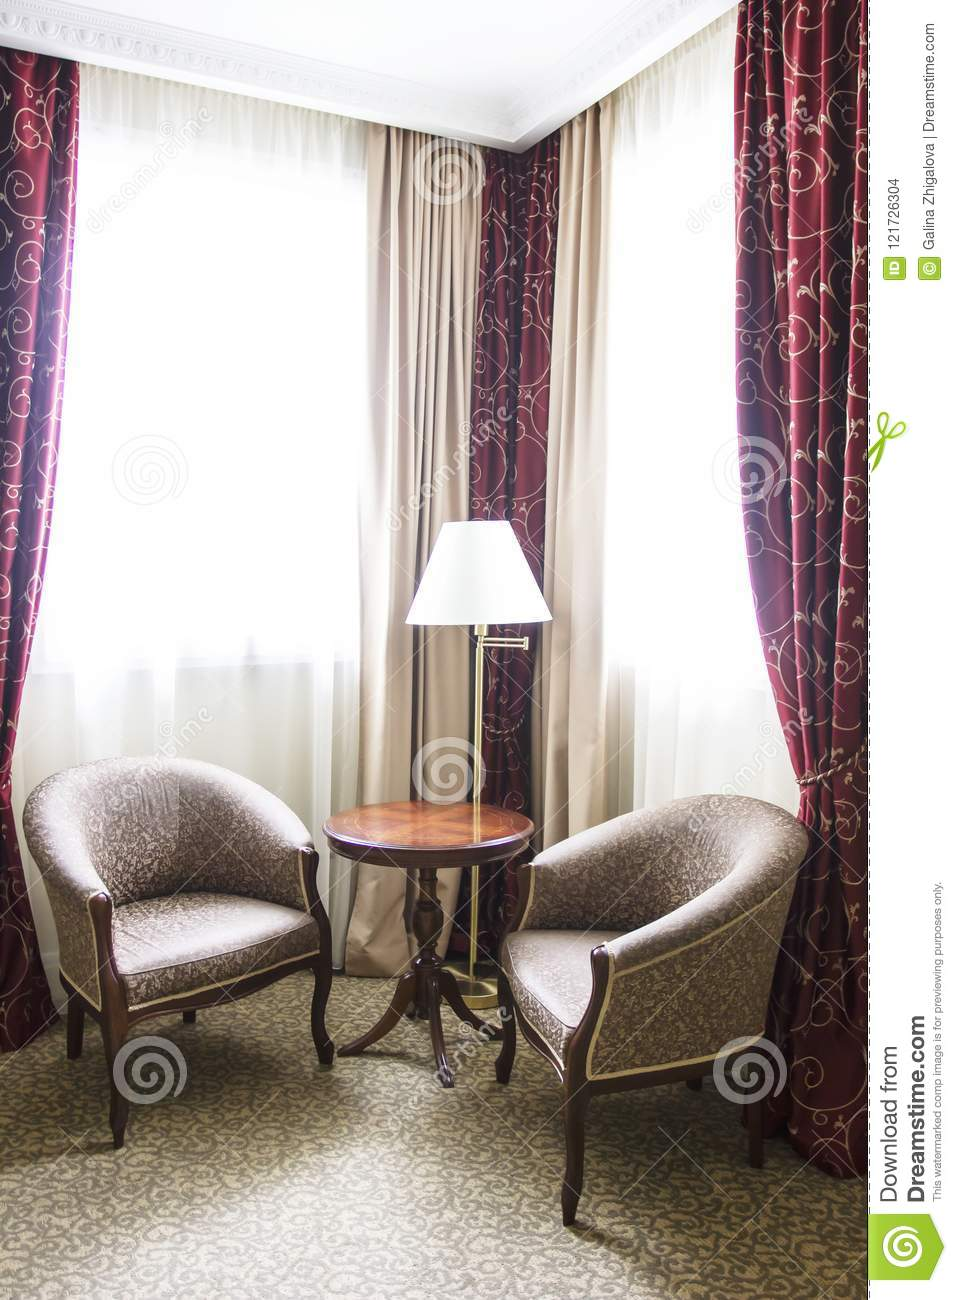 Hotel Room In Calm Colours, Sitting Area, Armchairs And ...